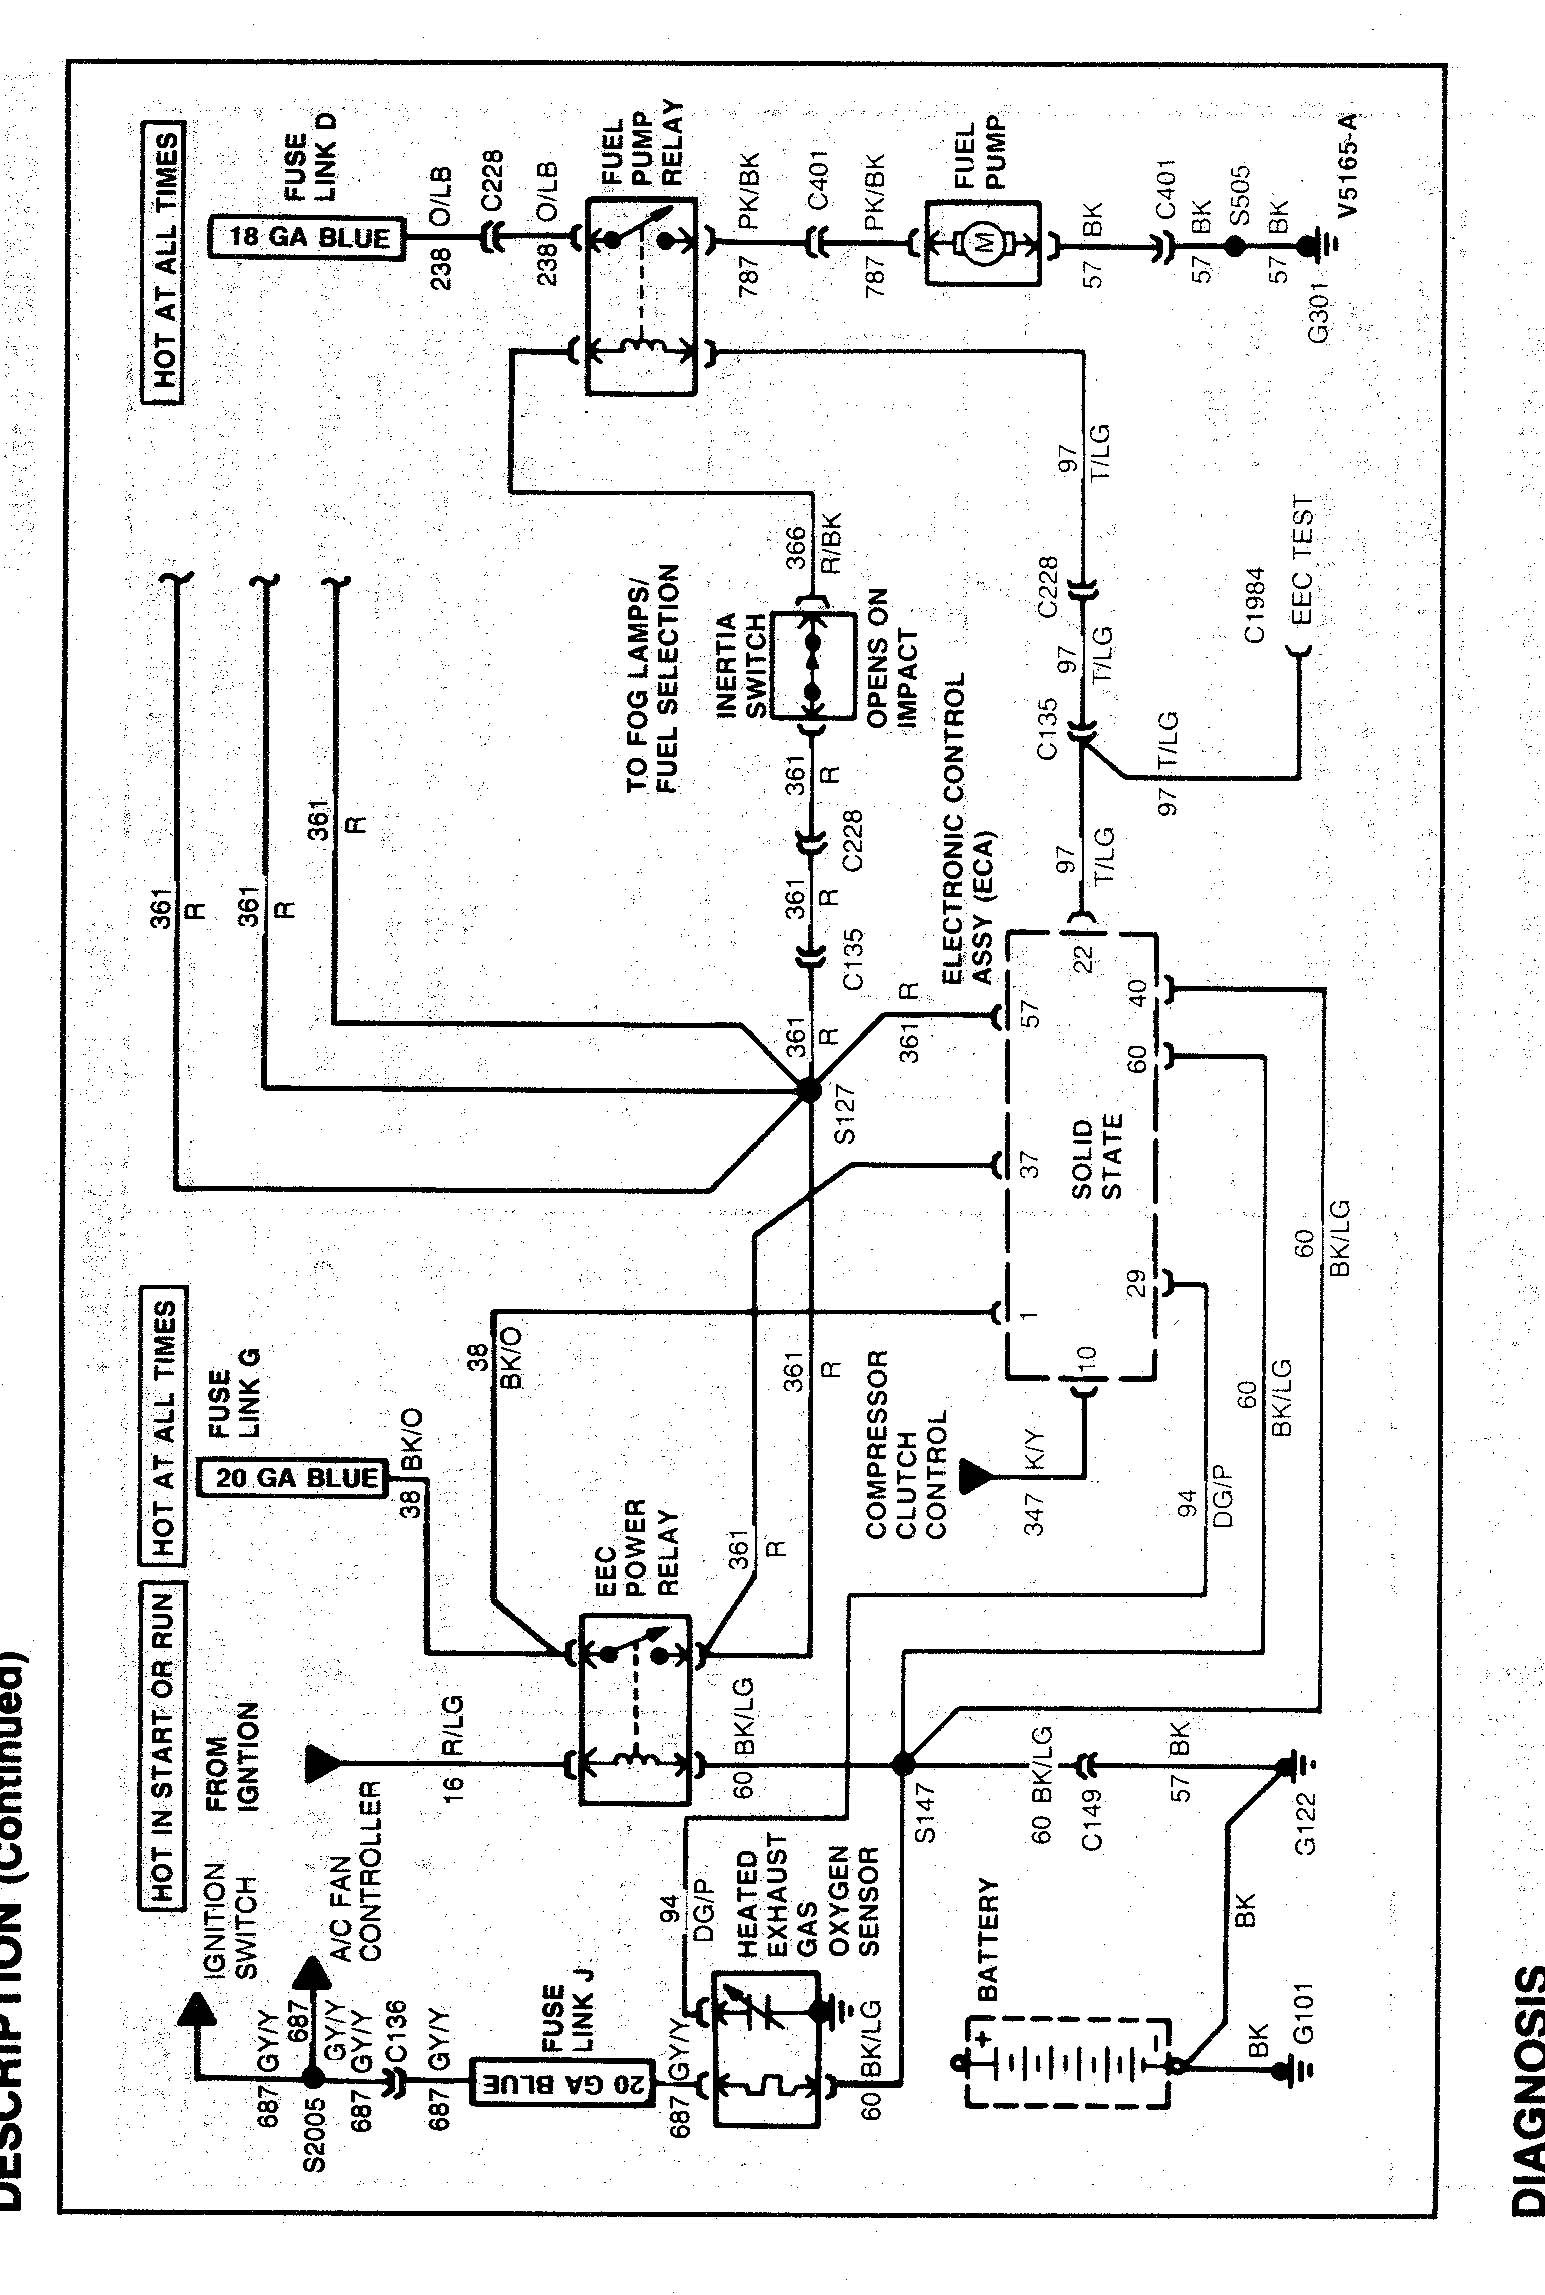 2000 Mustang Fuel Pump Wiring Diagram 37 Images 3 Horn Relay 1928d1051592166 May Electrical But Mustangfuelelectricaldiagram2 100 63 Impala